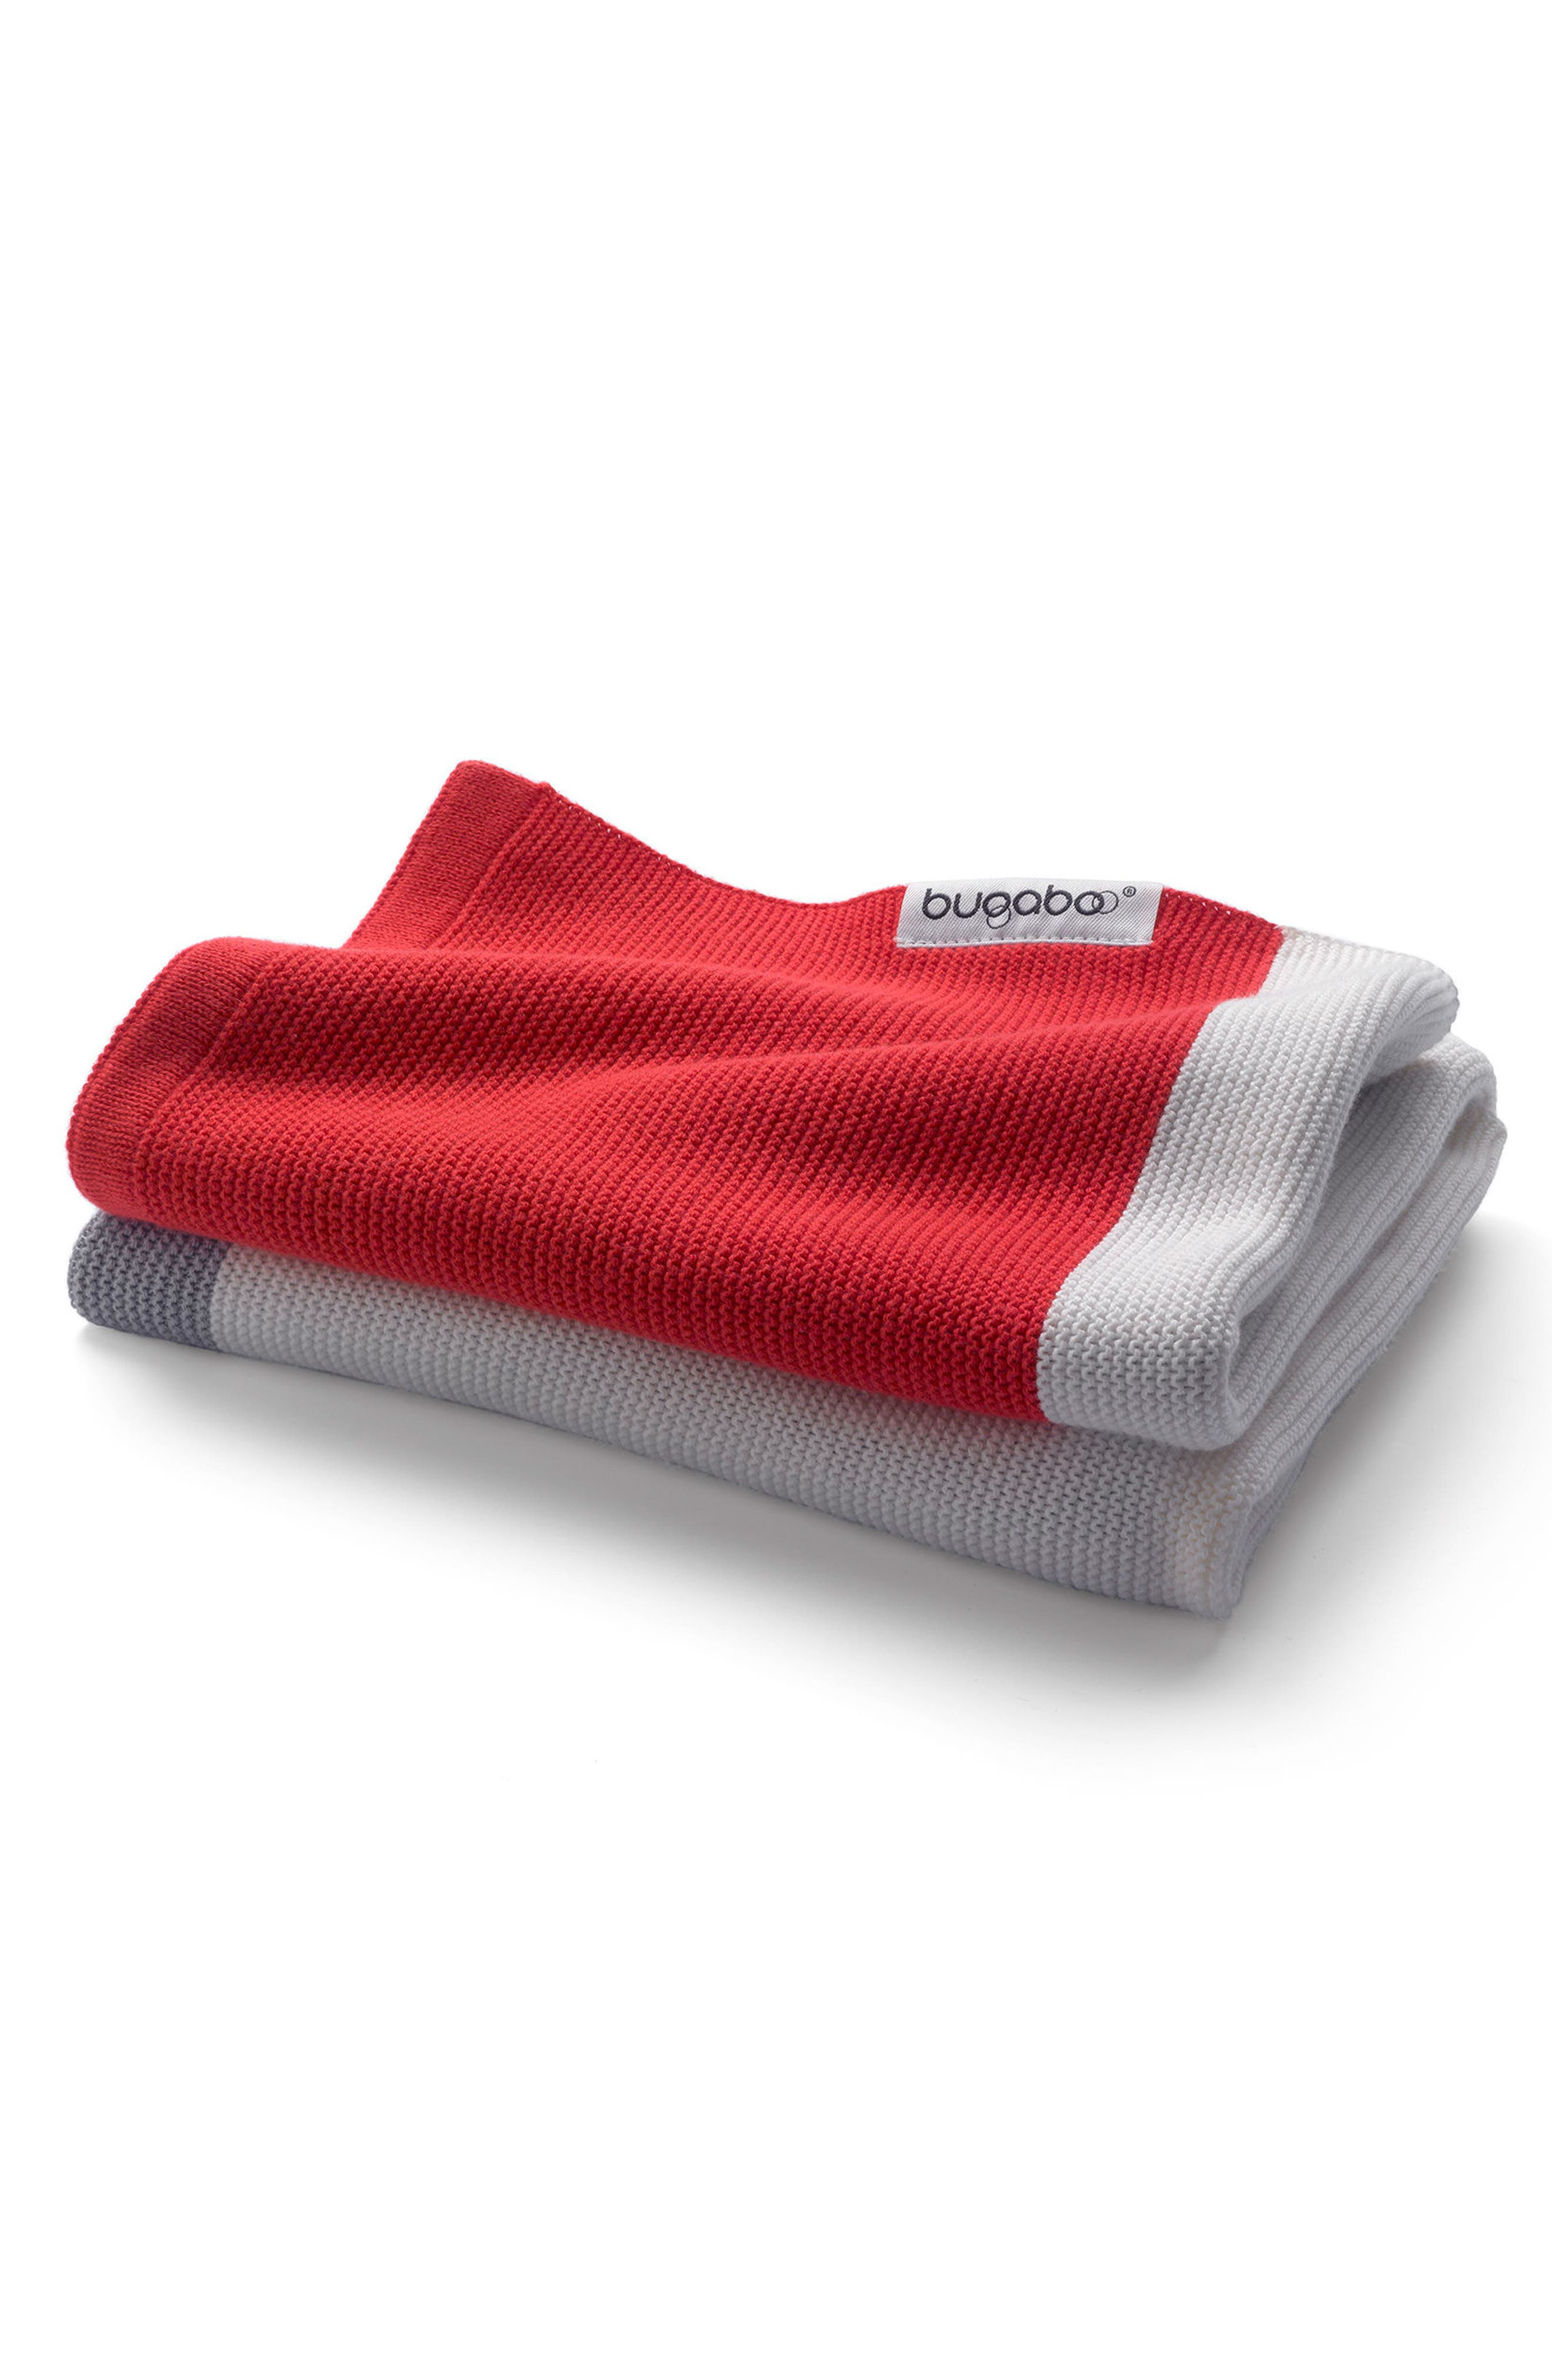 Light Cotton Blanket,                         Main,                         color, NEON RED